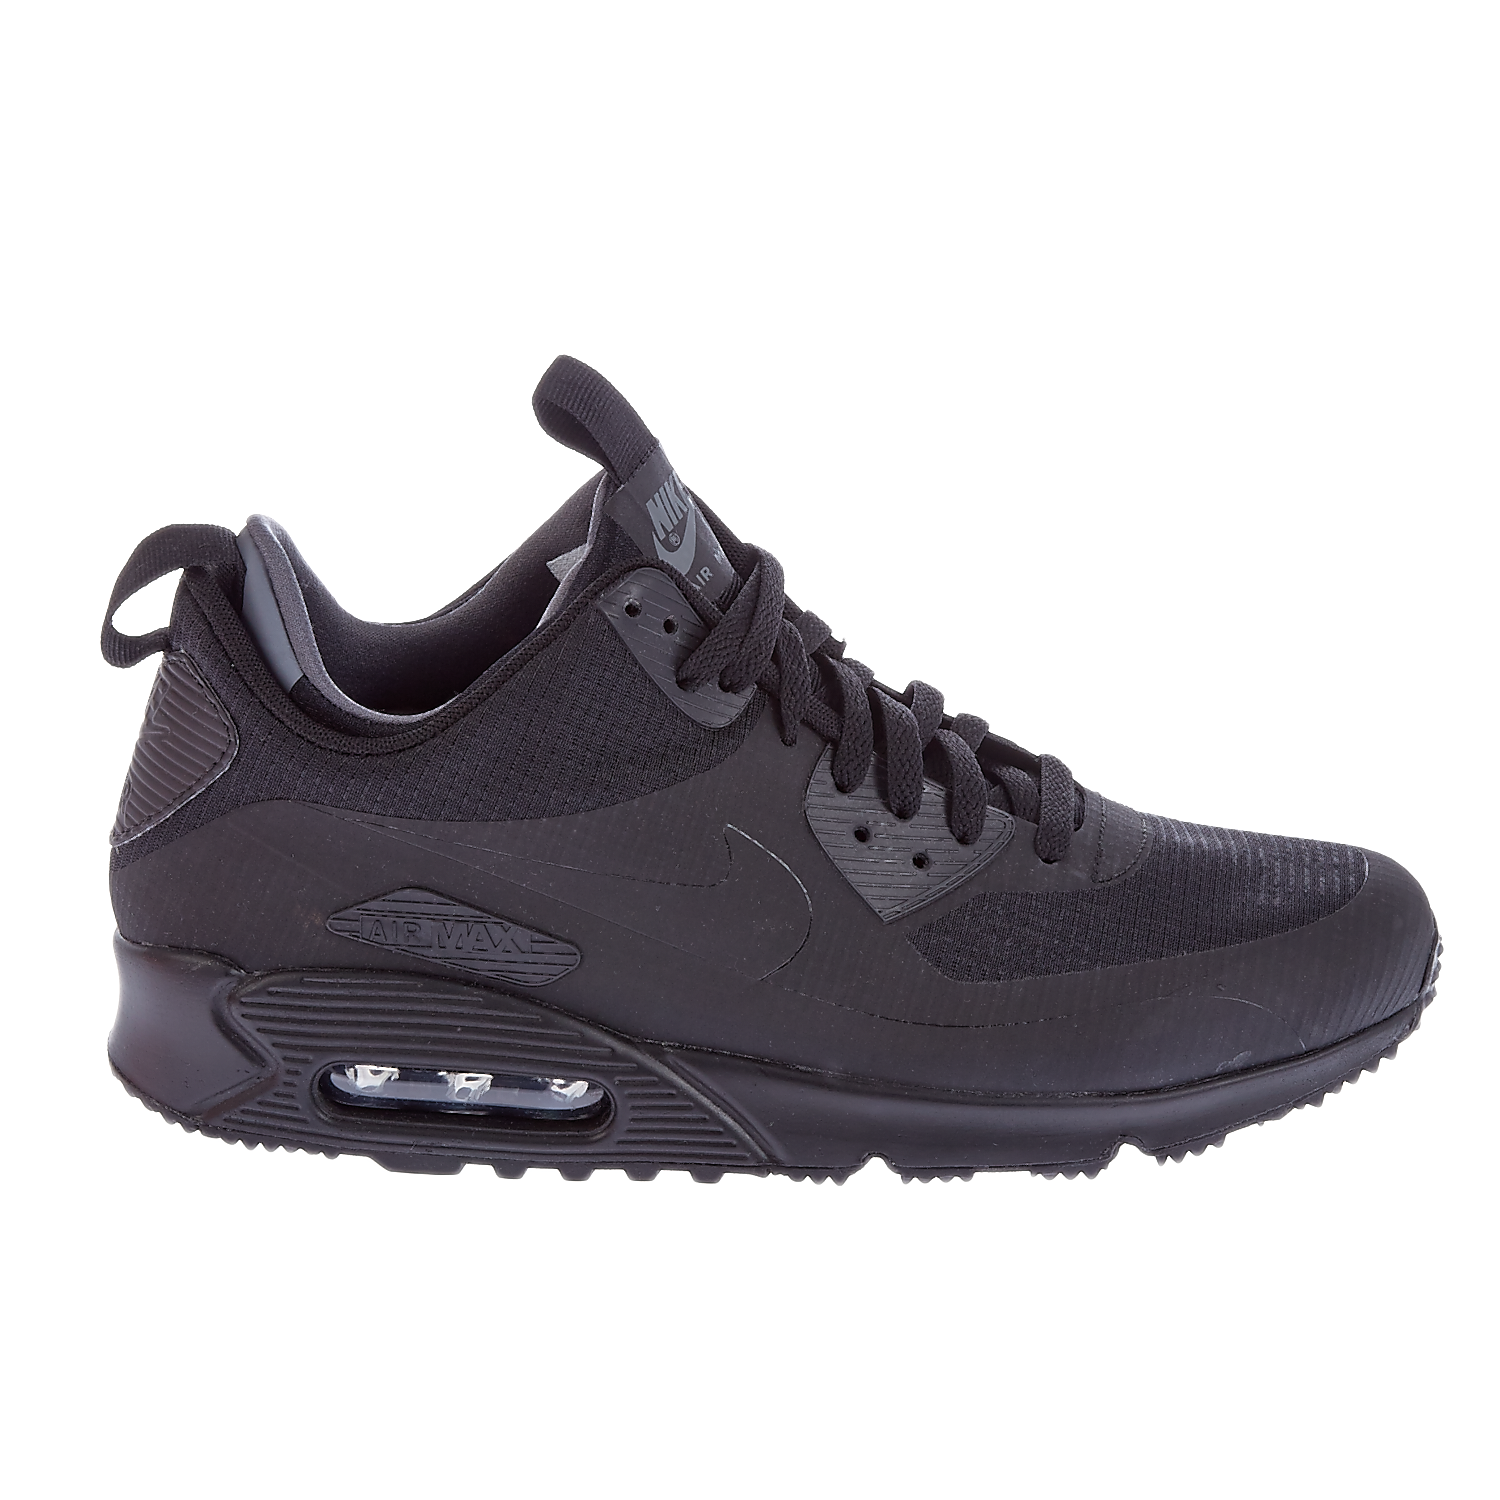 NIKE – Ανδρικά παπούτσια Nike AIR MAX 90 MID WNTR μαύρα